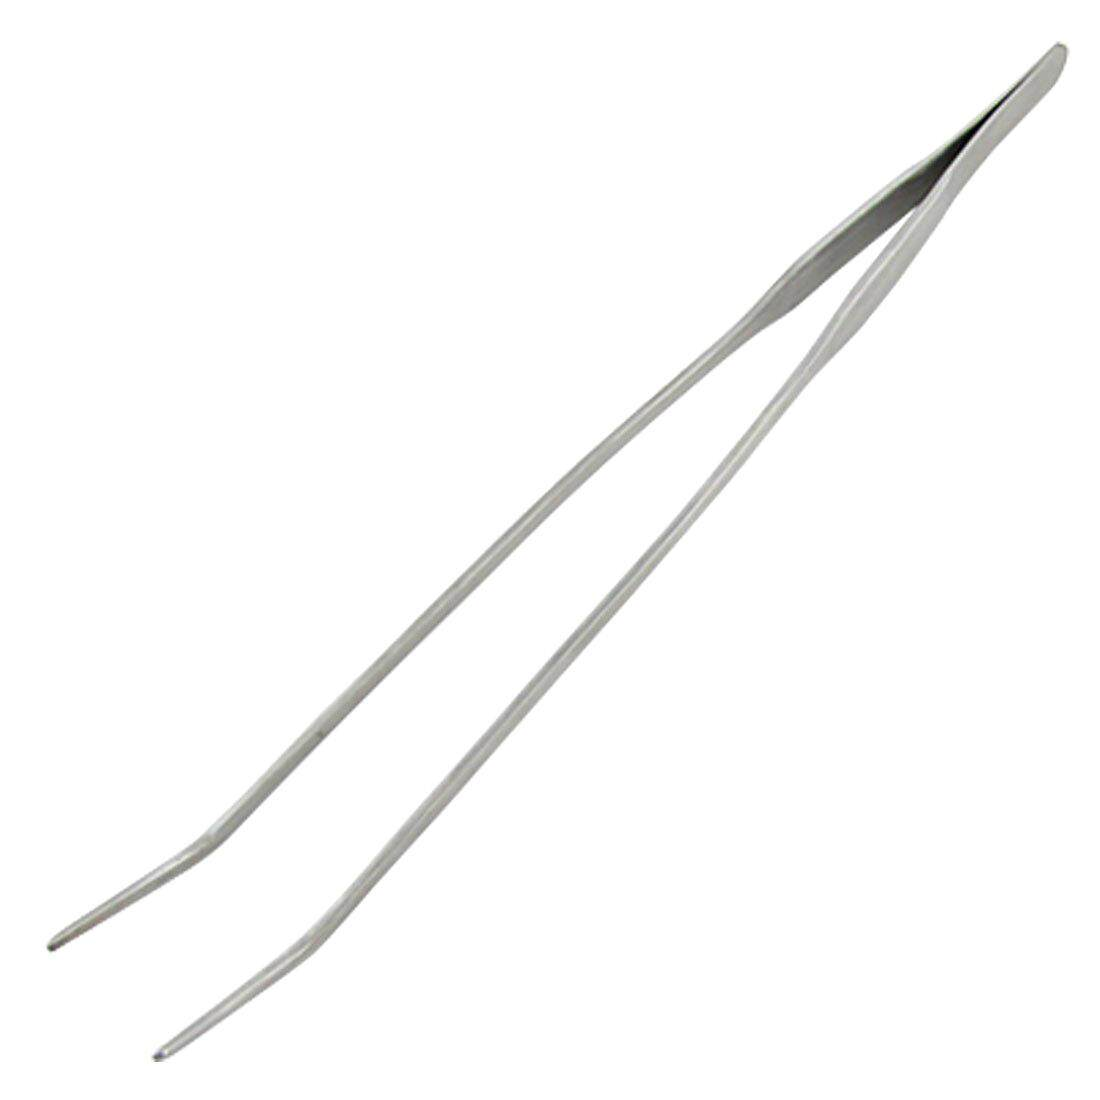 Plant Stainless Steel Curved Tweezer Clip for Fish Tank - intl Philippines